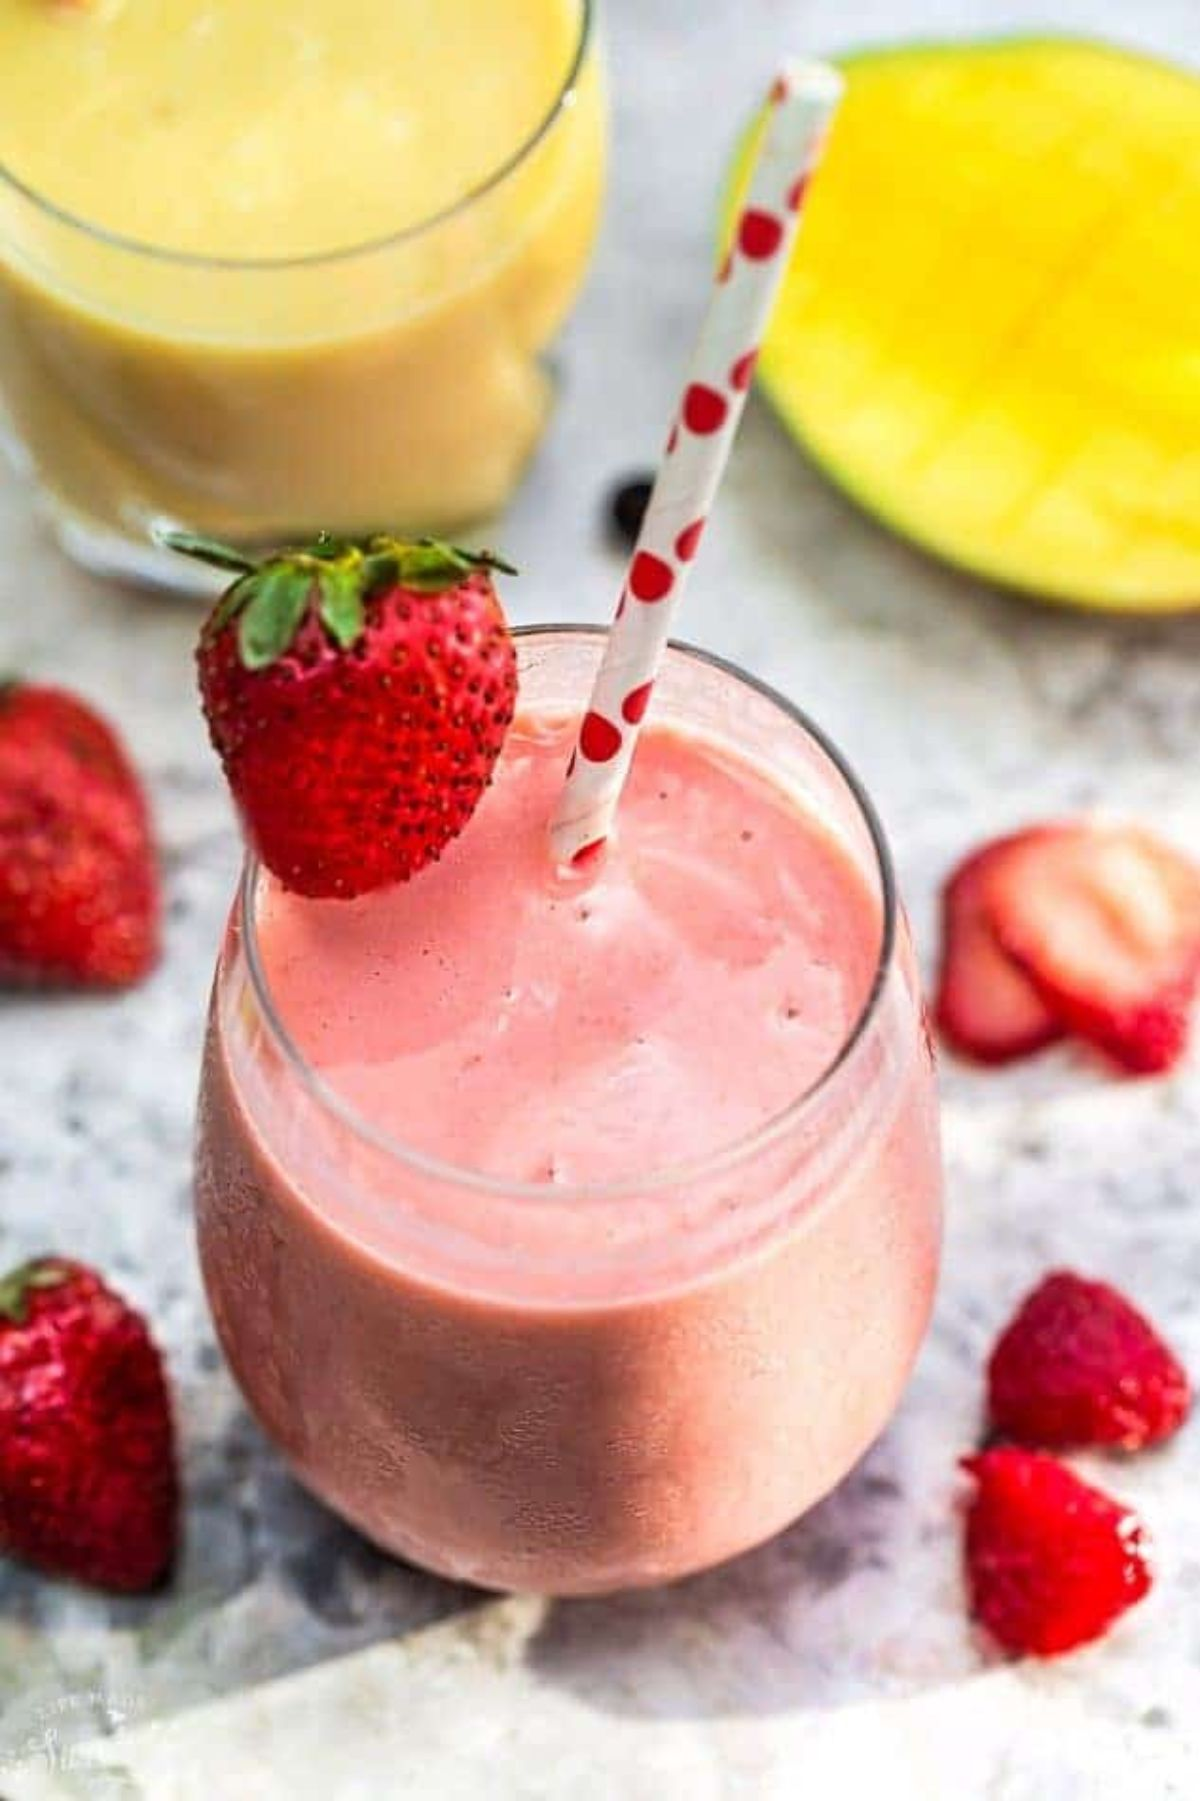 A glass of strawberry smoothie garnished with a strawberry and with a paper white and red straw in it. fresh strawberries are scattered around